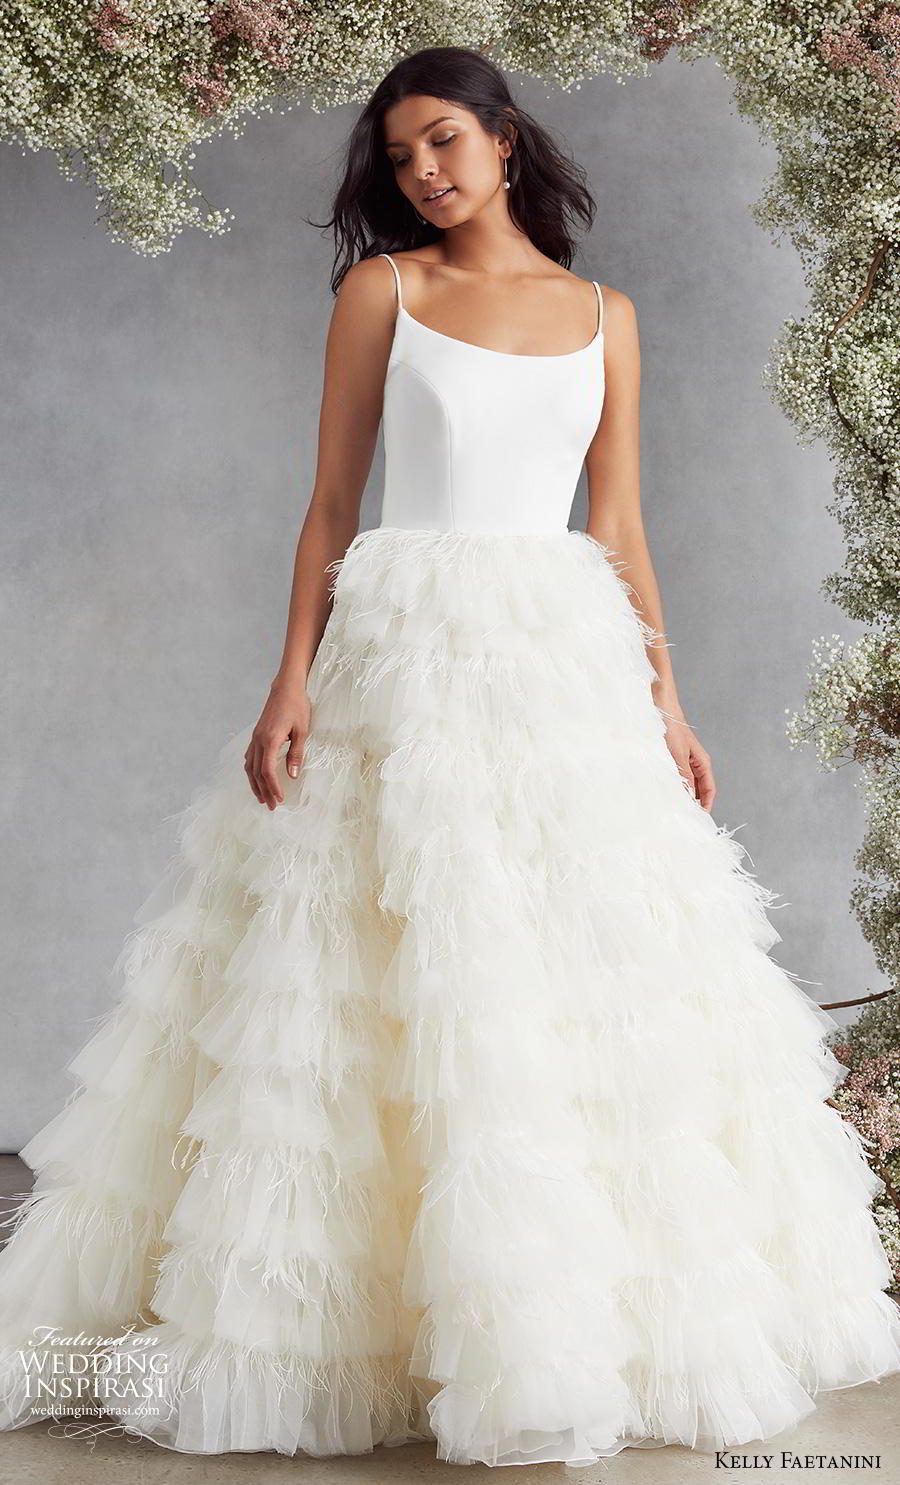 kelly faetanini fall 2020 bridal sleveeless spaghetti strap scoop neckline simple minimalist bodice ruffled skirt romantic a  line wedding dress backless low back sweep train (10) mv